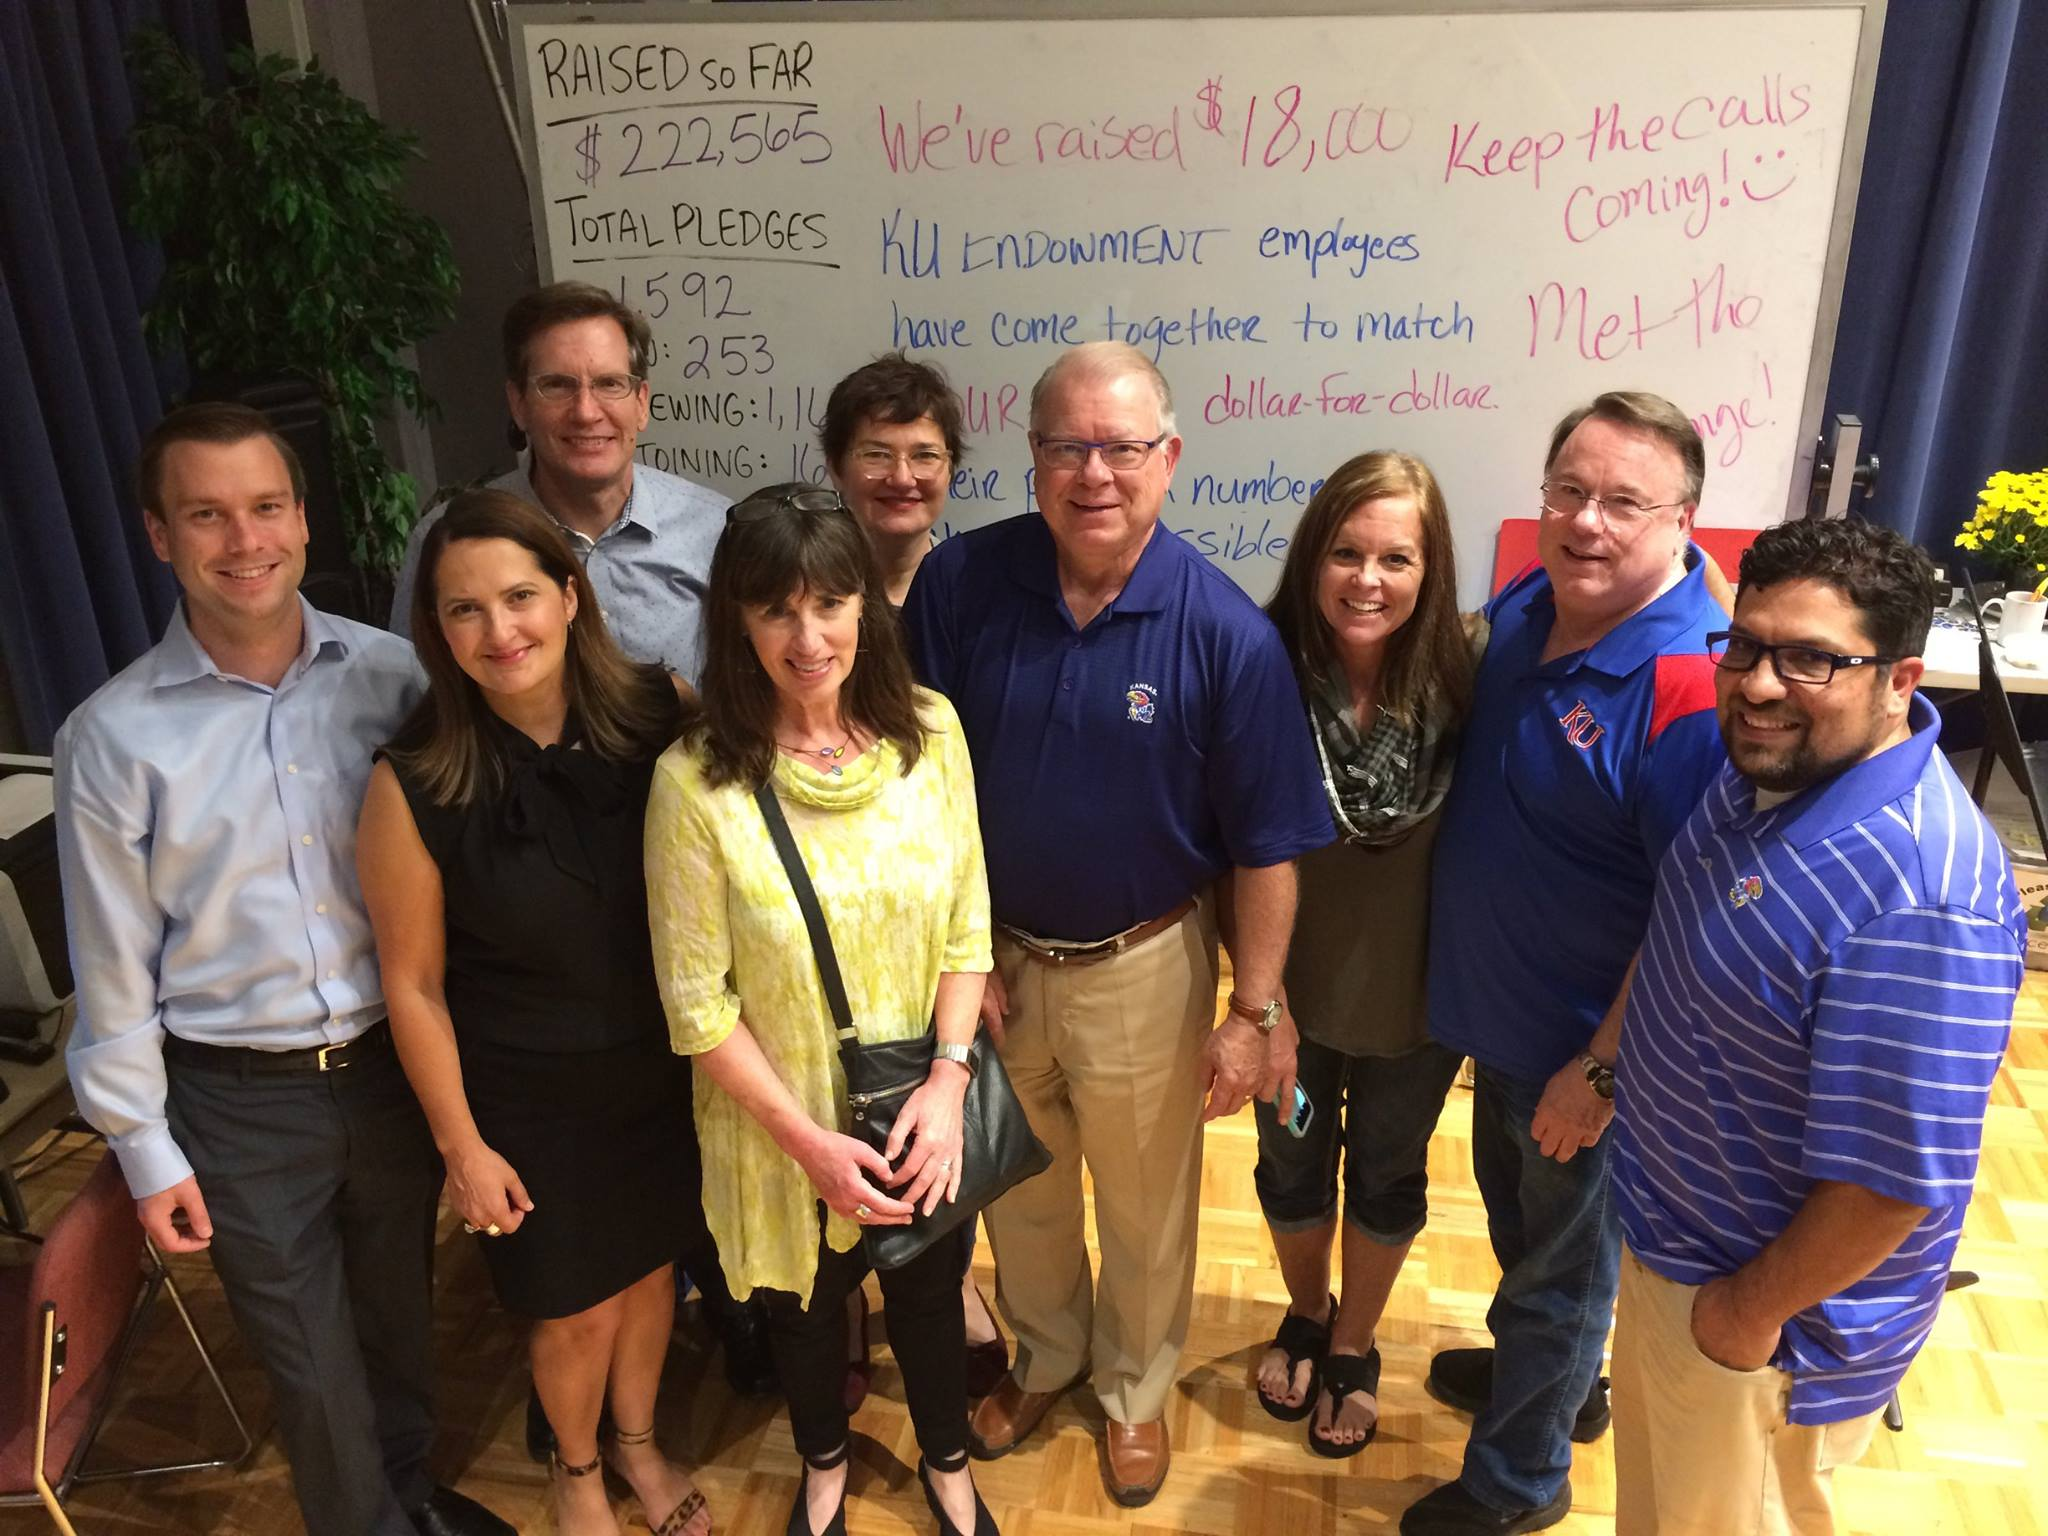 Hamilton (second from left) still helps out during KPR's semi-annual membership drives, joining a team of KU Endowment volunteers.